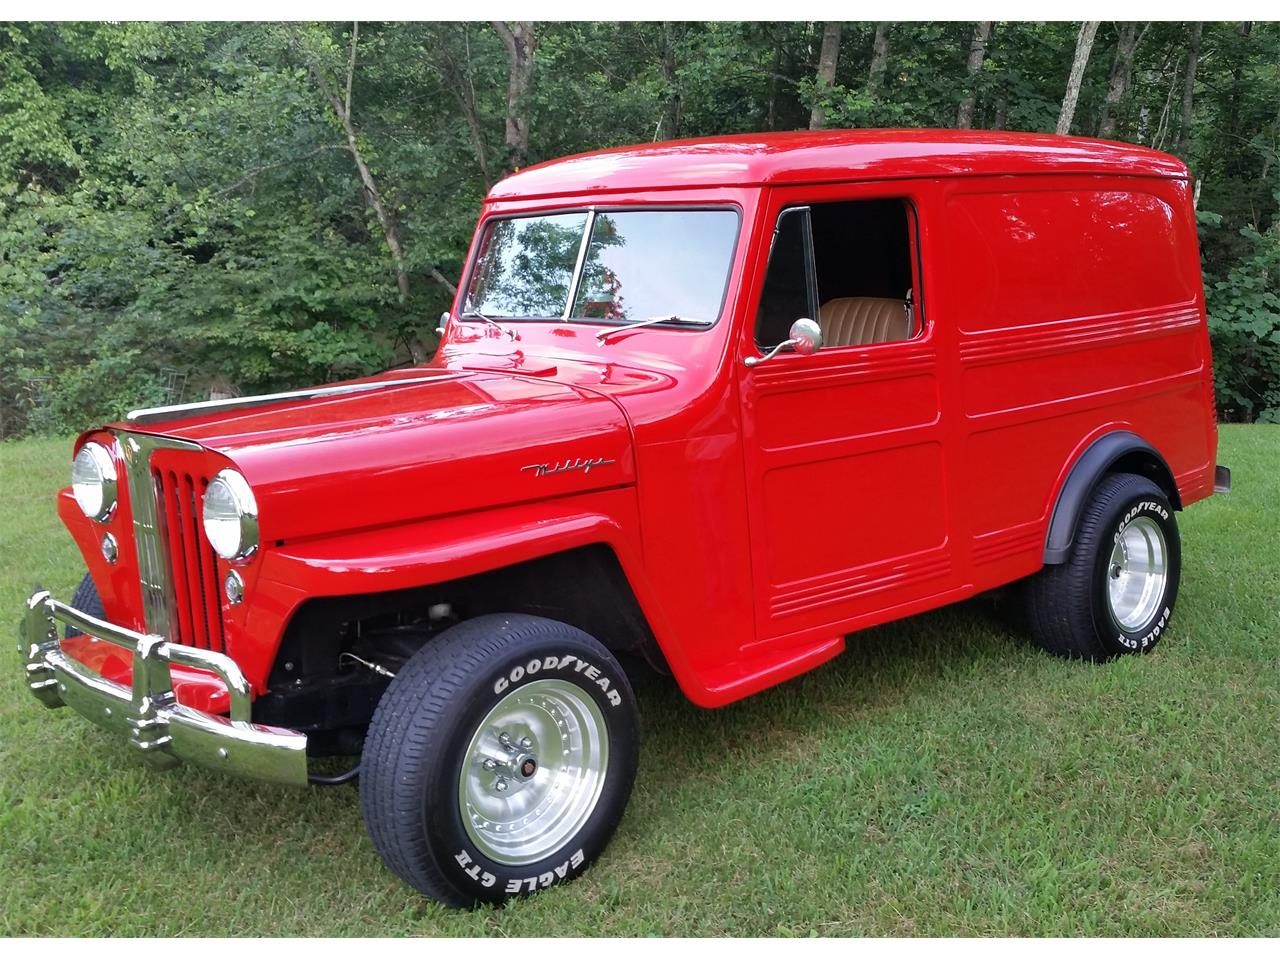 Large Picture of Classic 1947 Willys Overland Station Wagon - $56,000.00 Offered by a Private Seller - P9N7